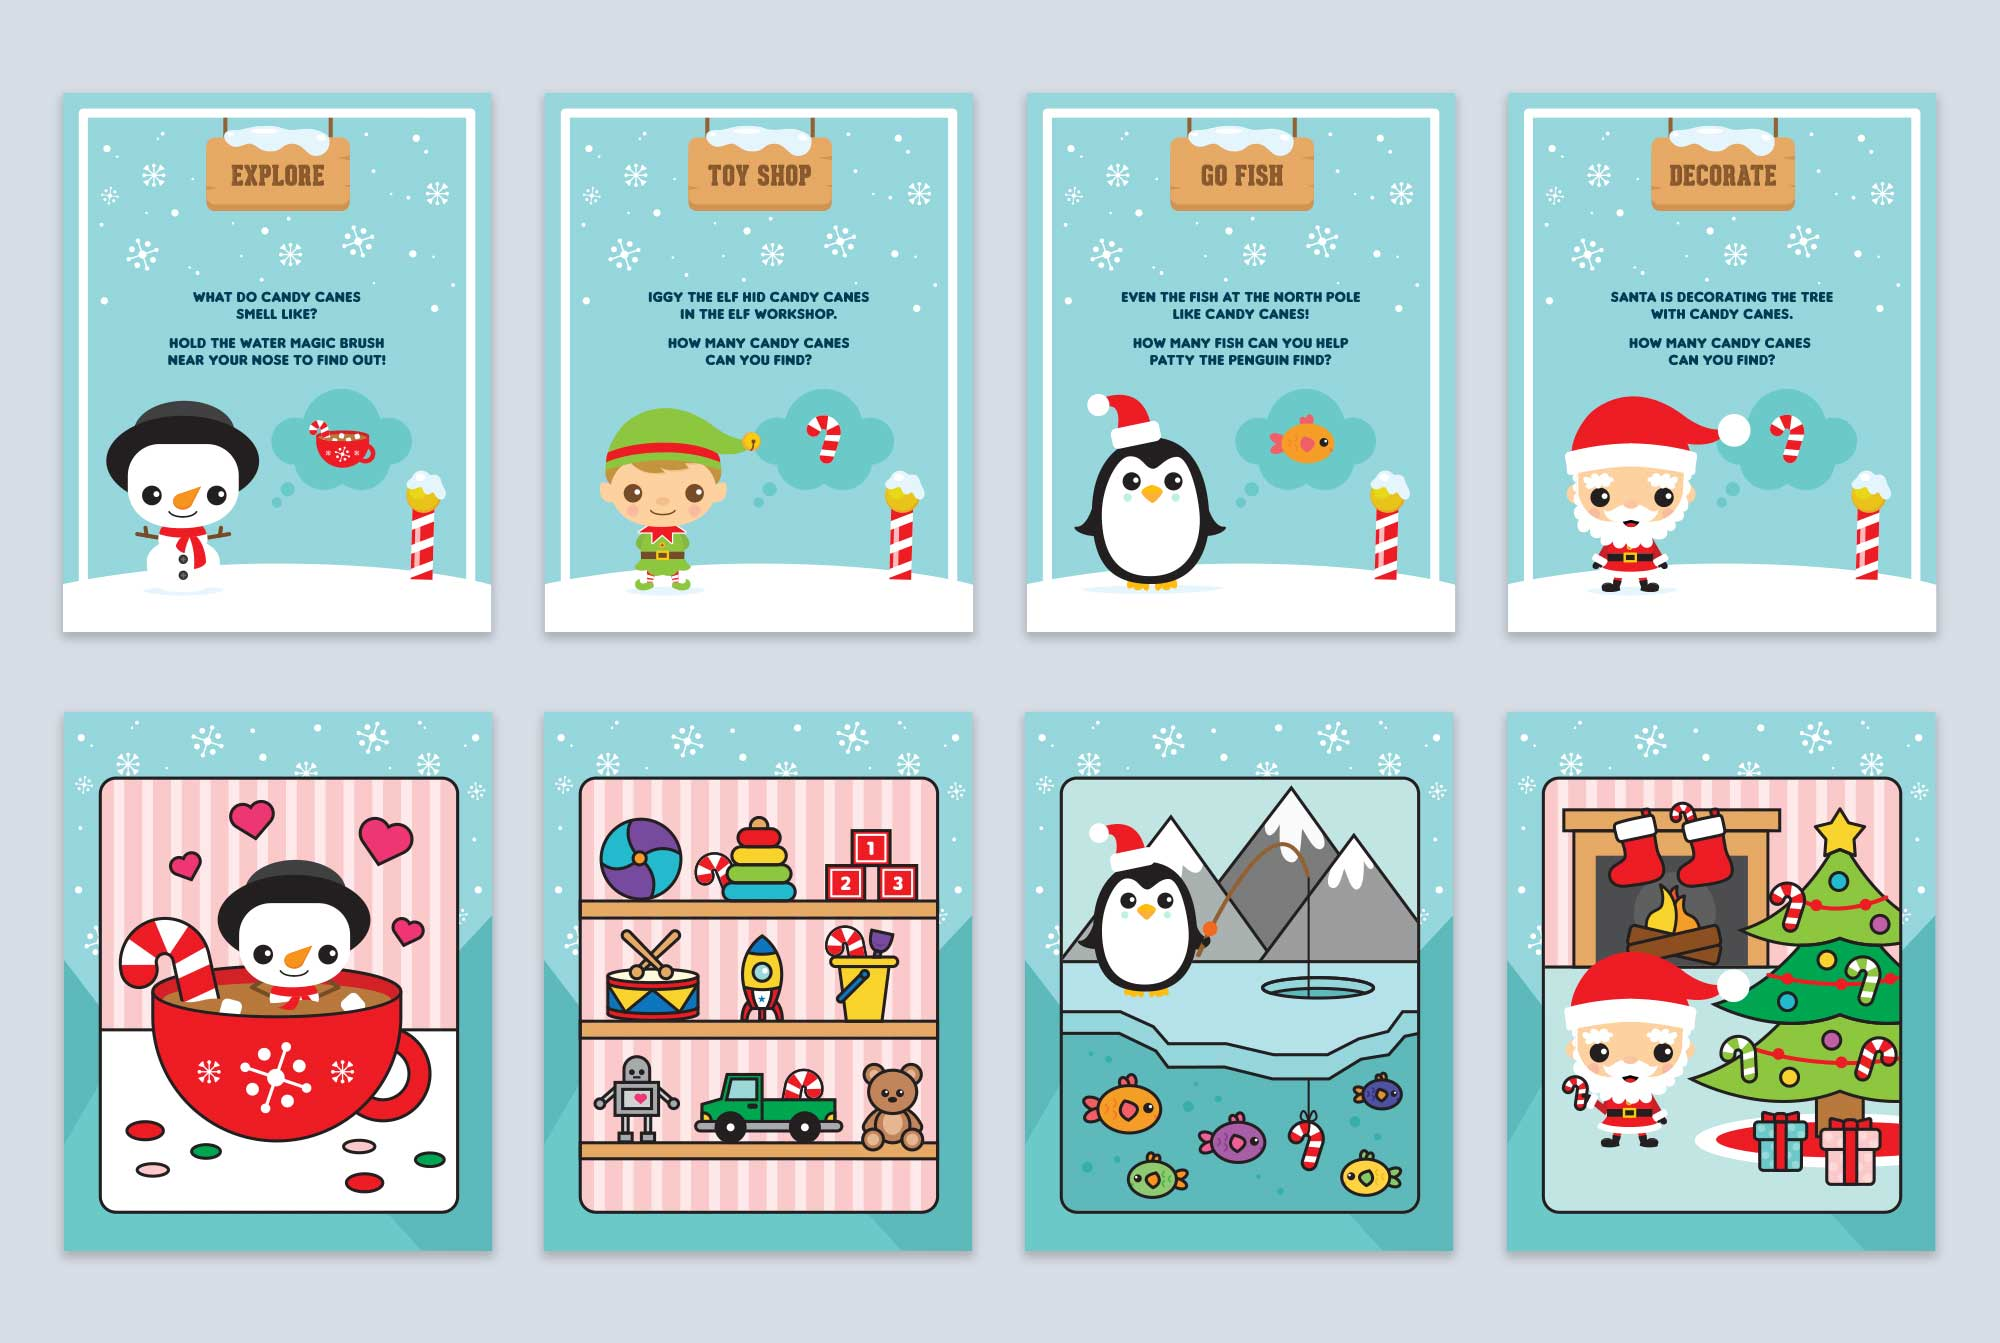 North Pole Candy Cane Pages